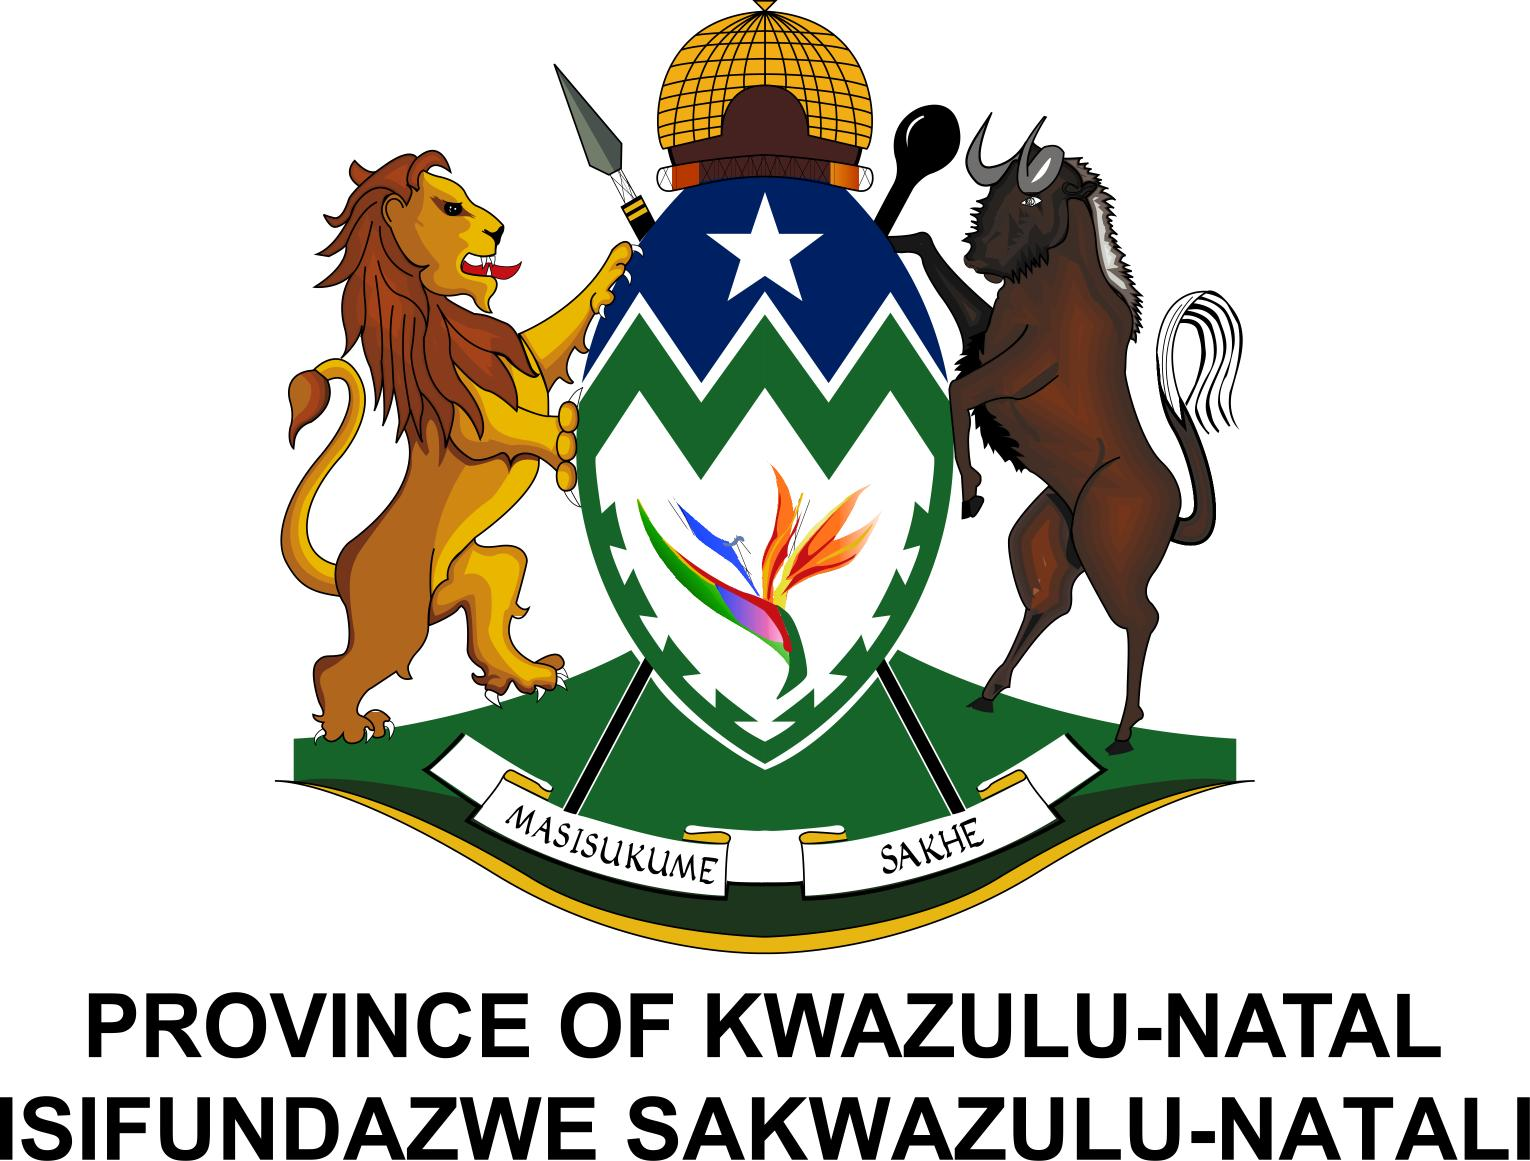 The Kzn Coat Of Arms